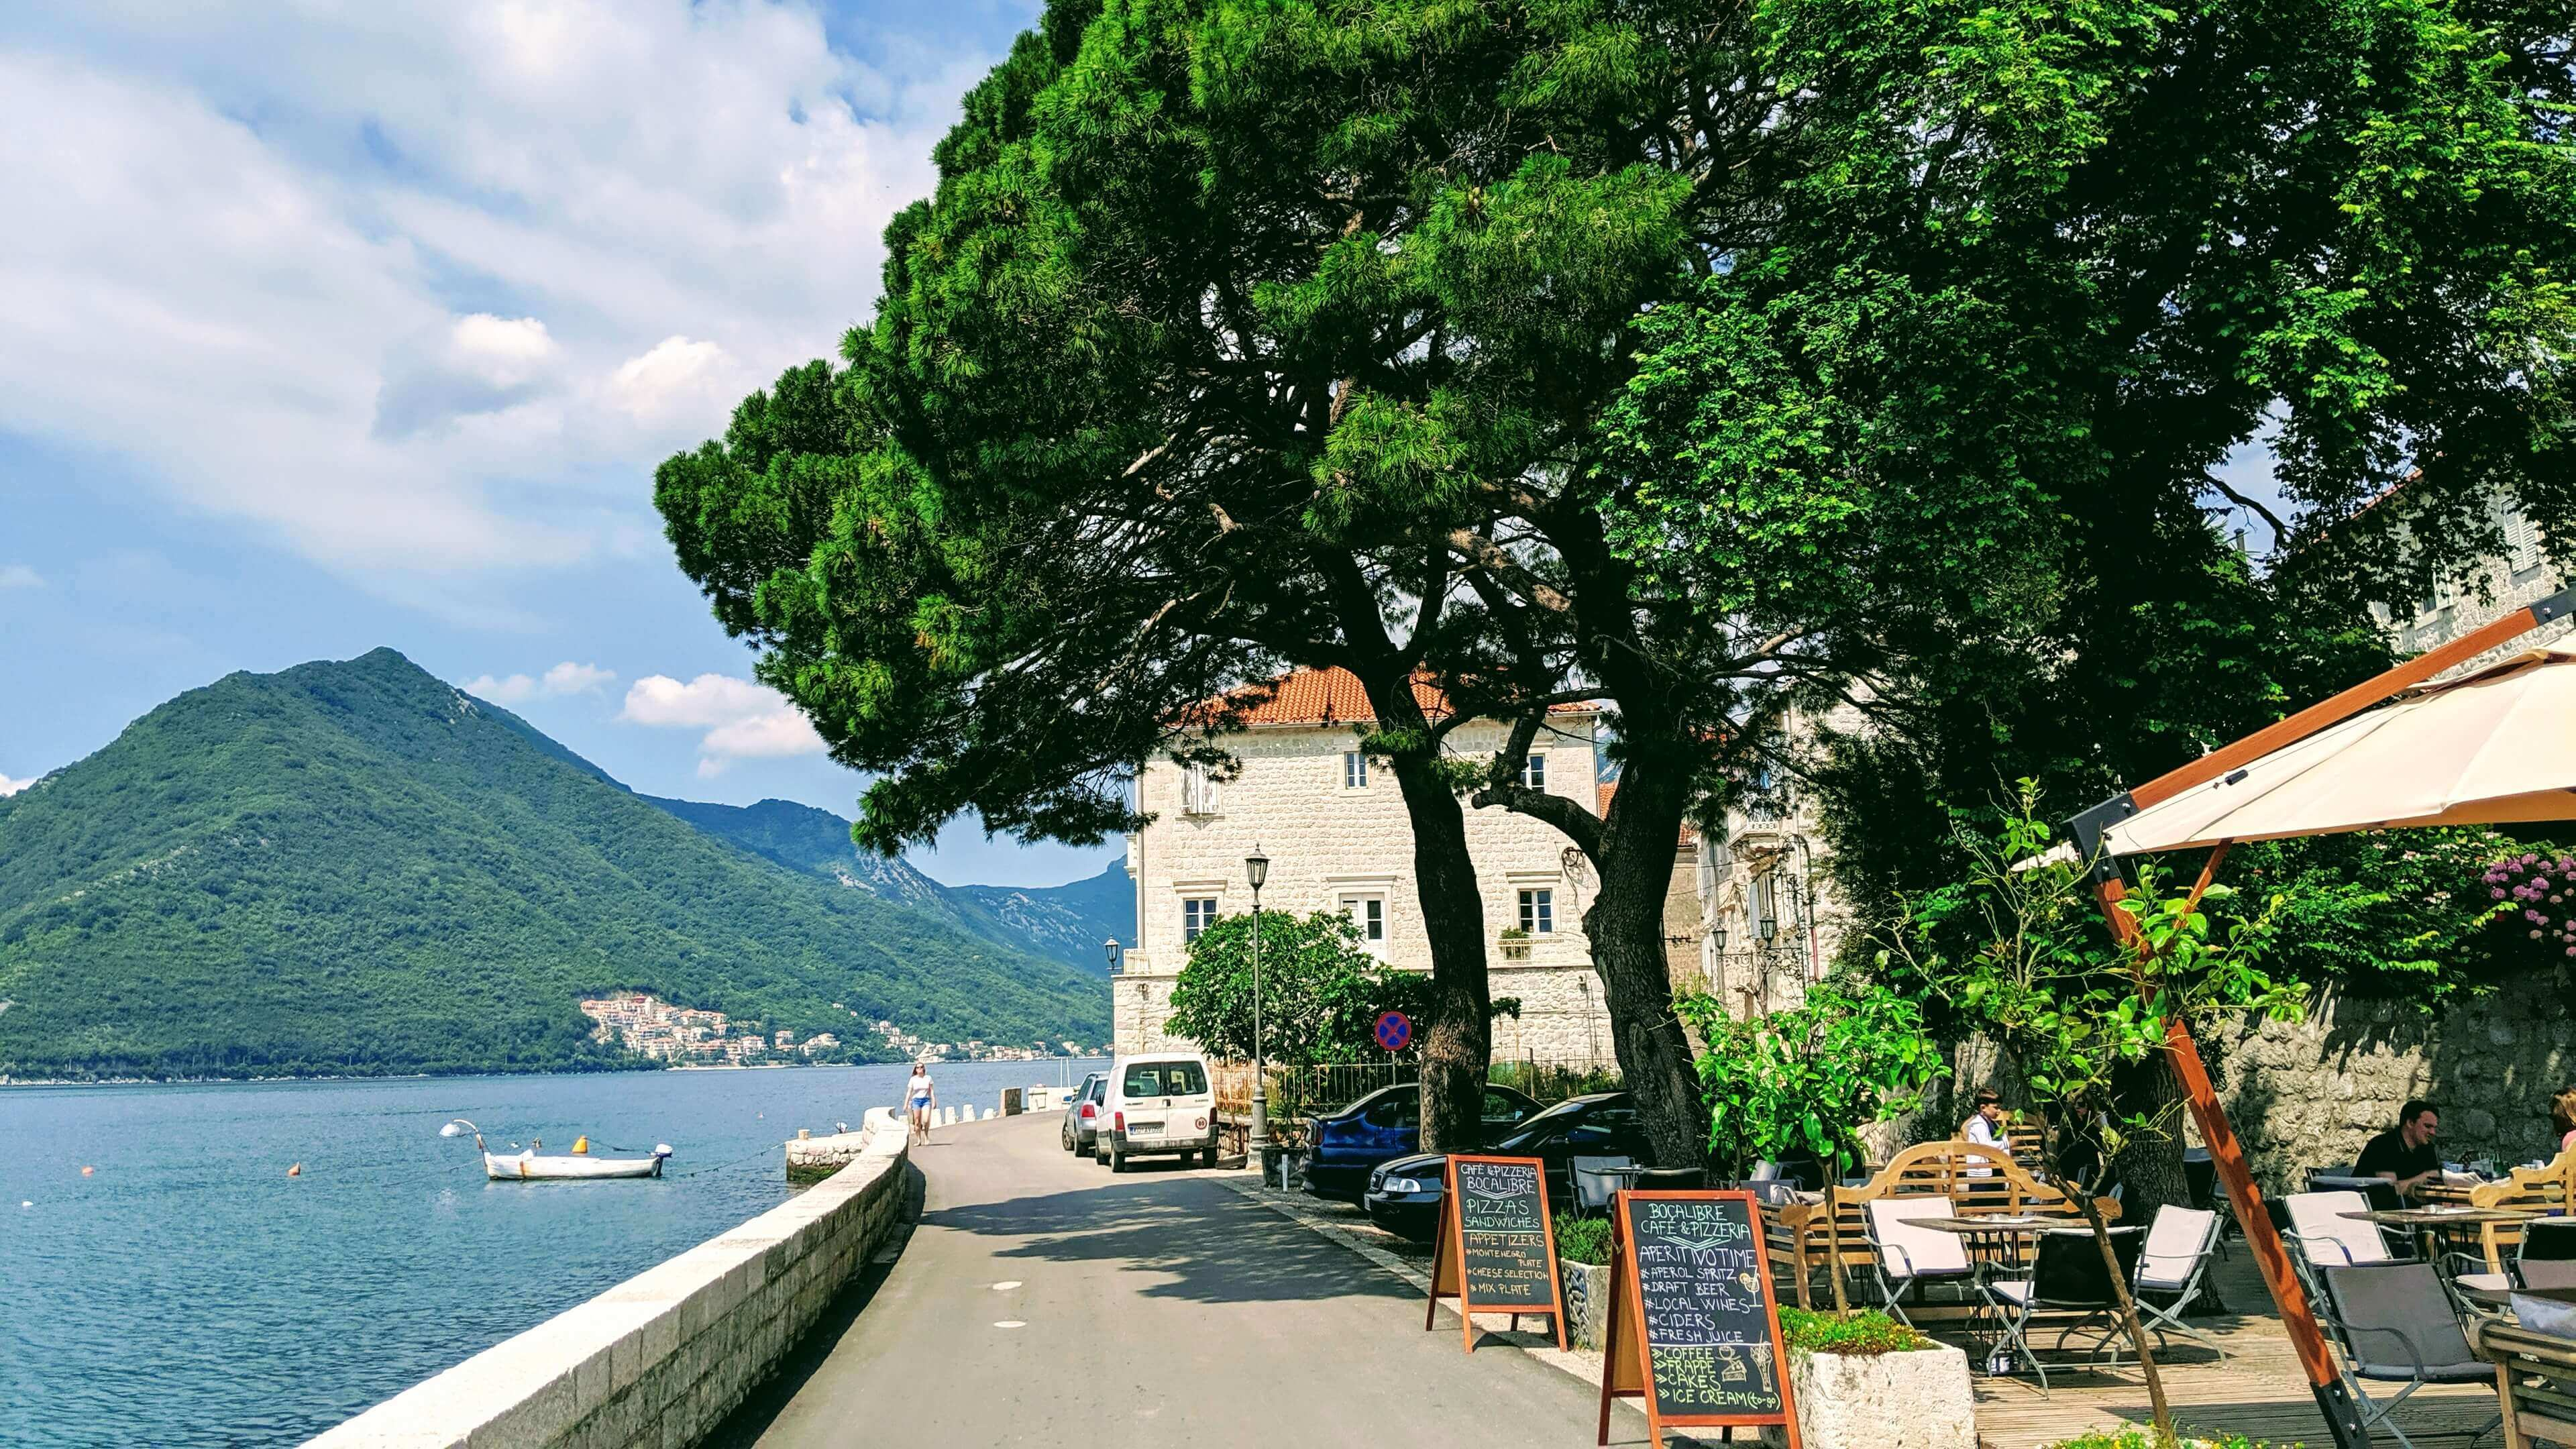 Things to see and do in Montenegro: The Boardwalk in Perast.